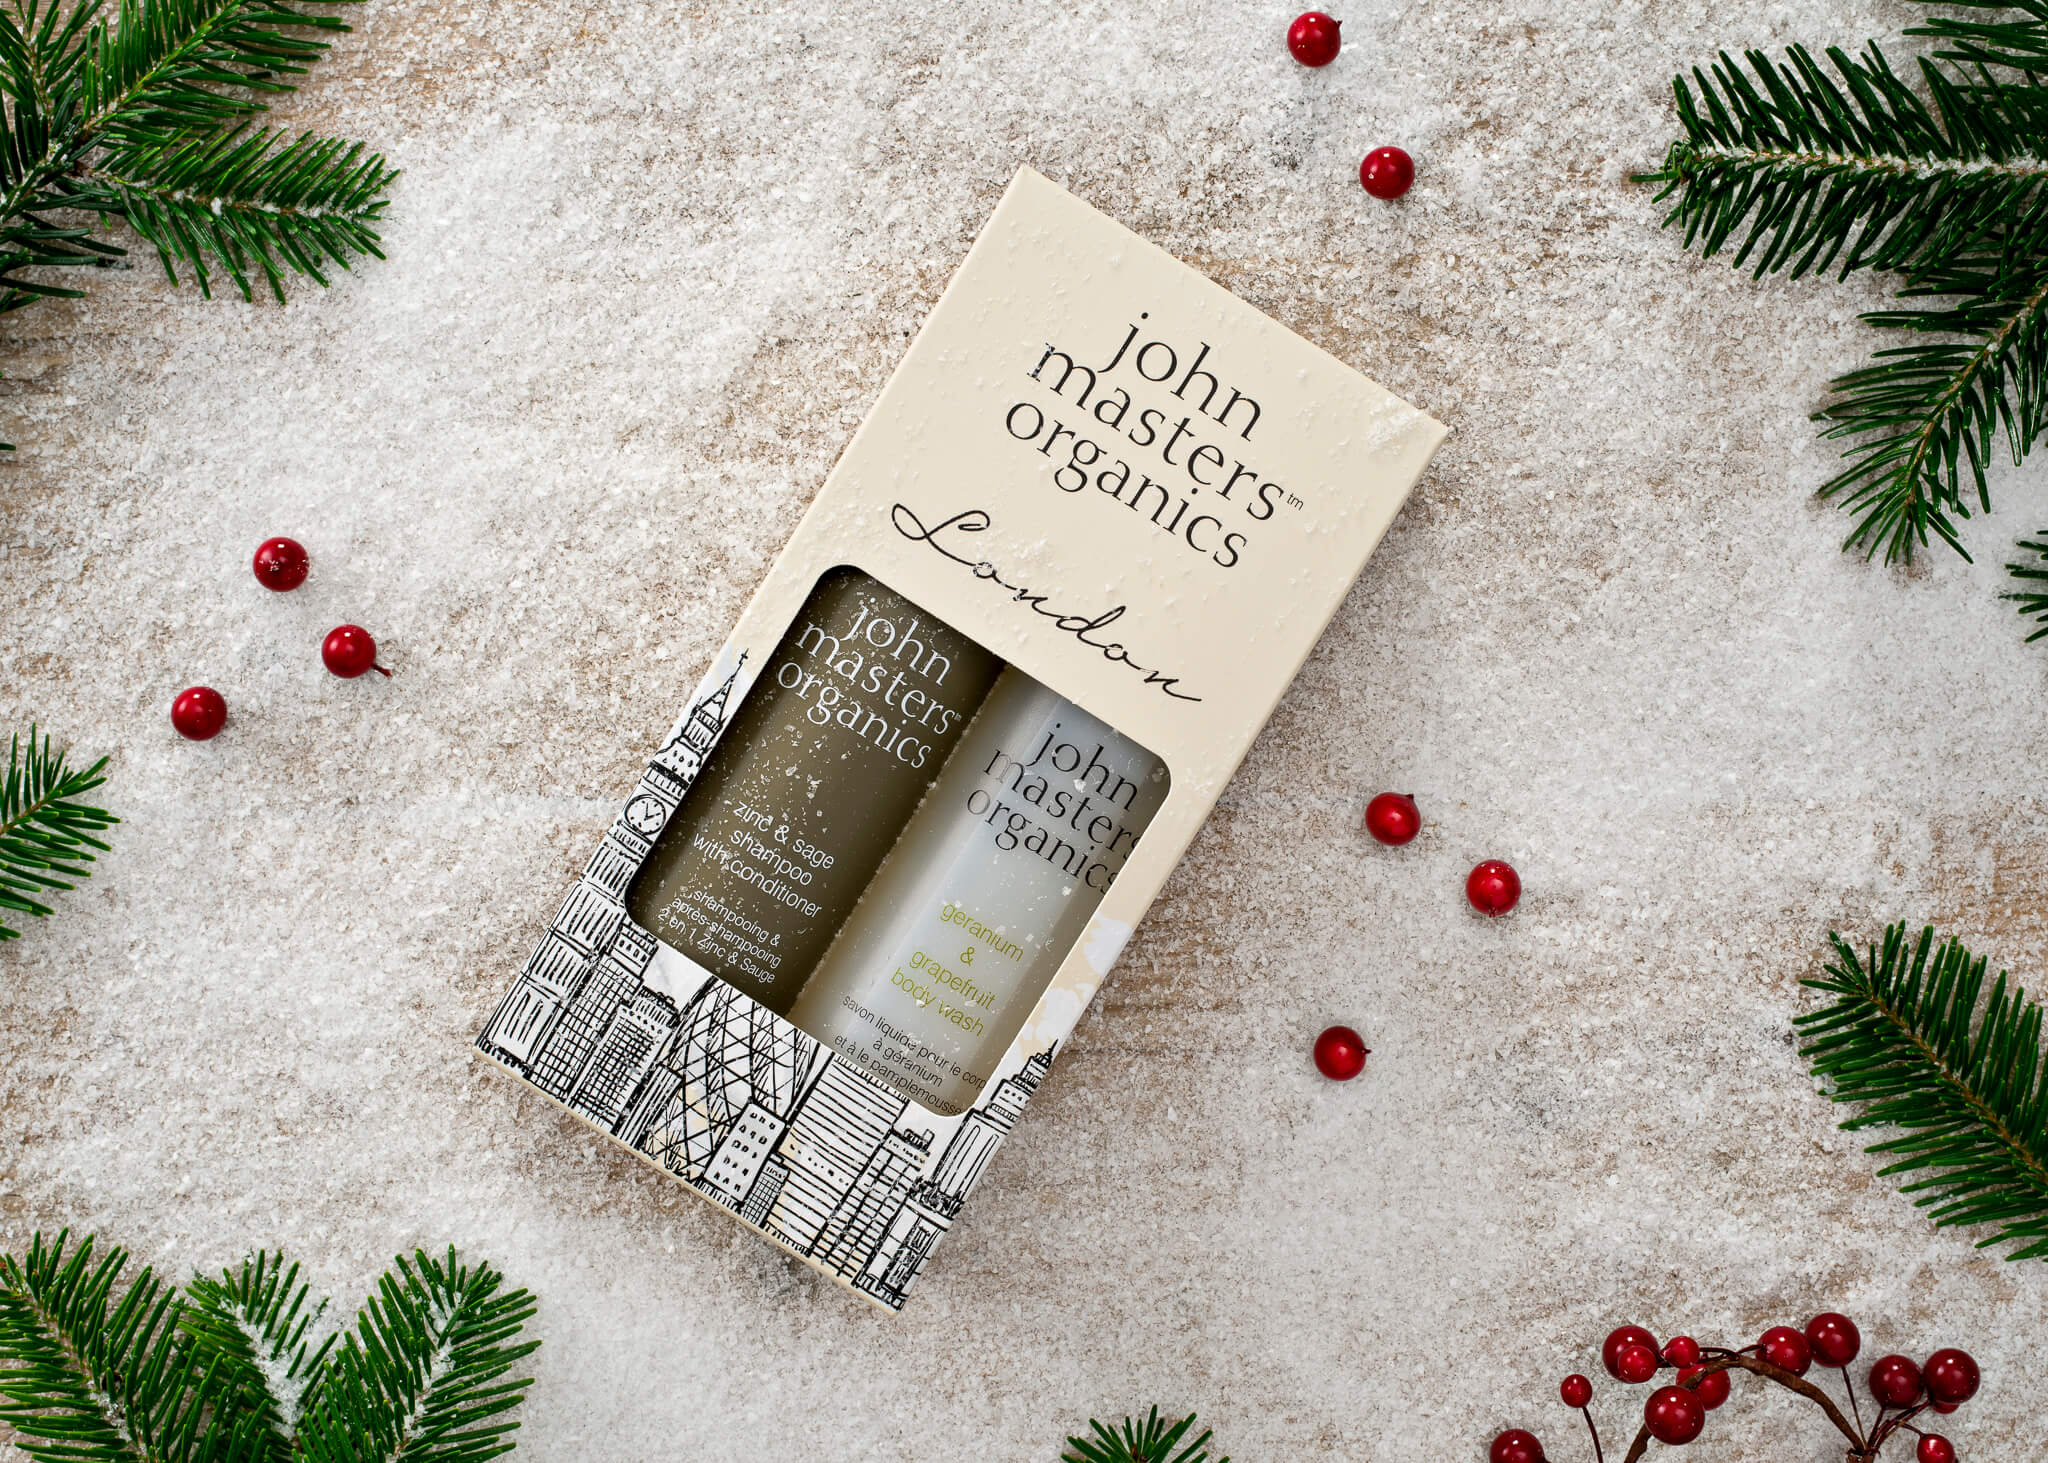 Packaging design by John Masters Organics